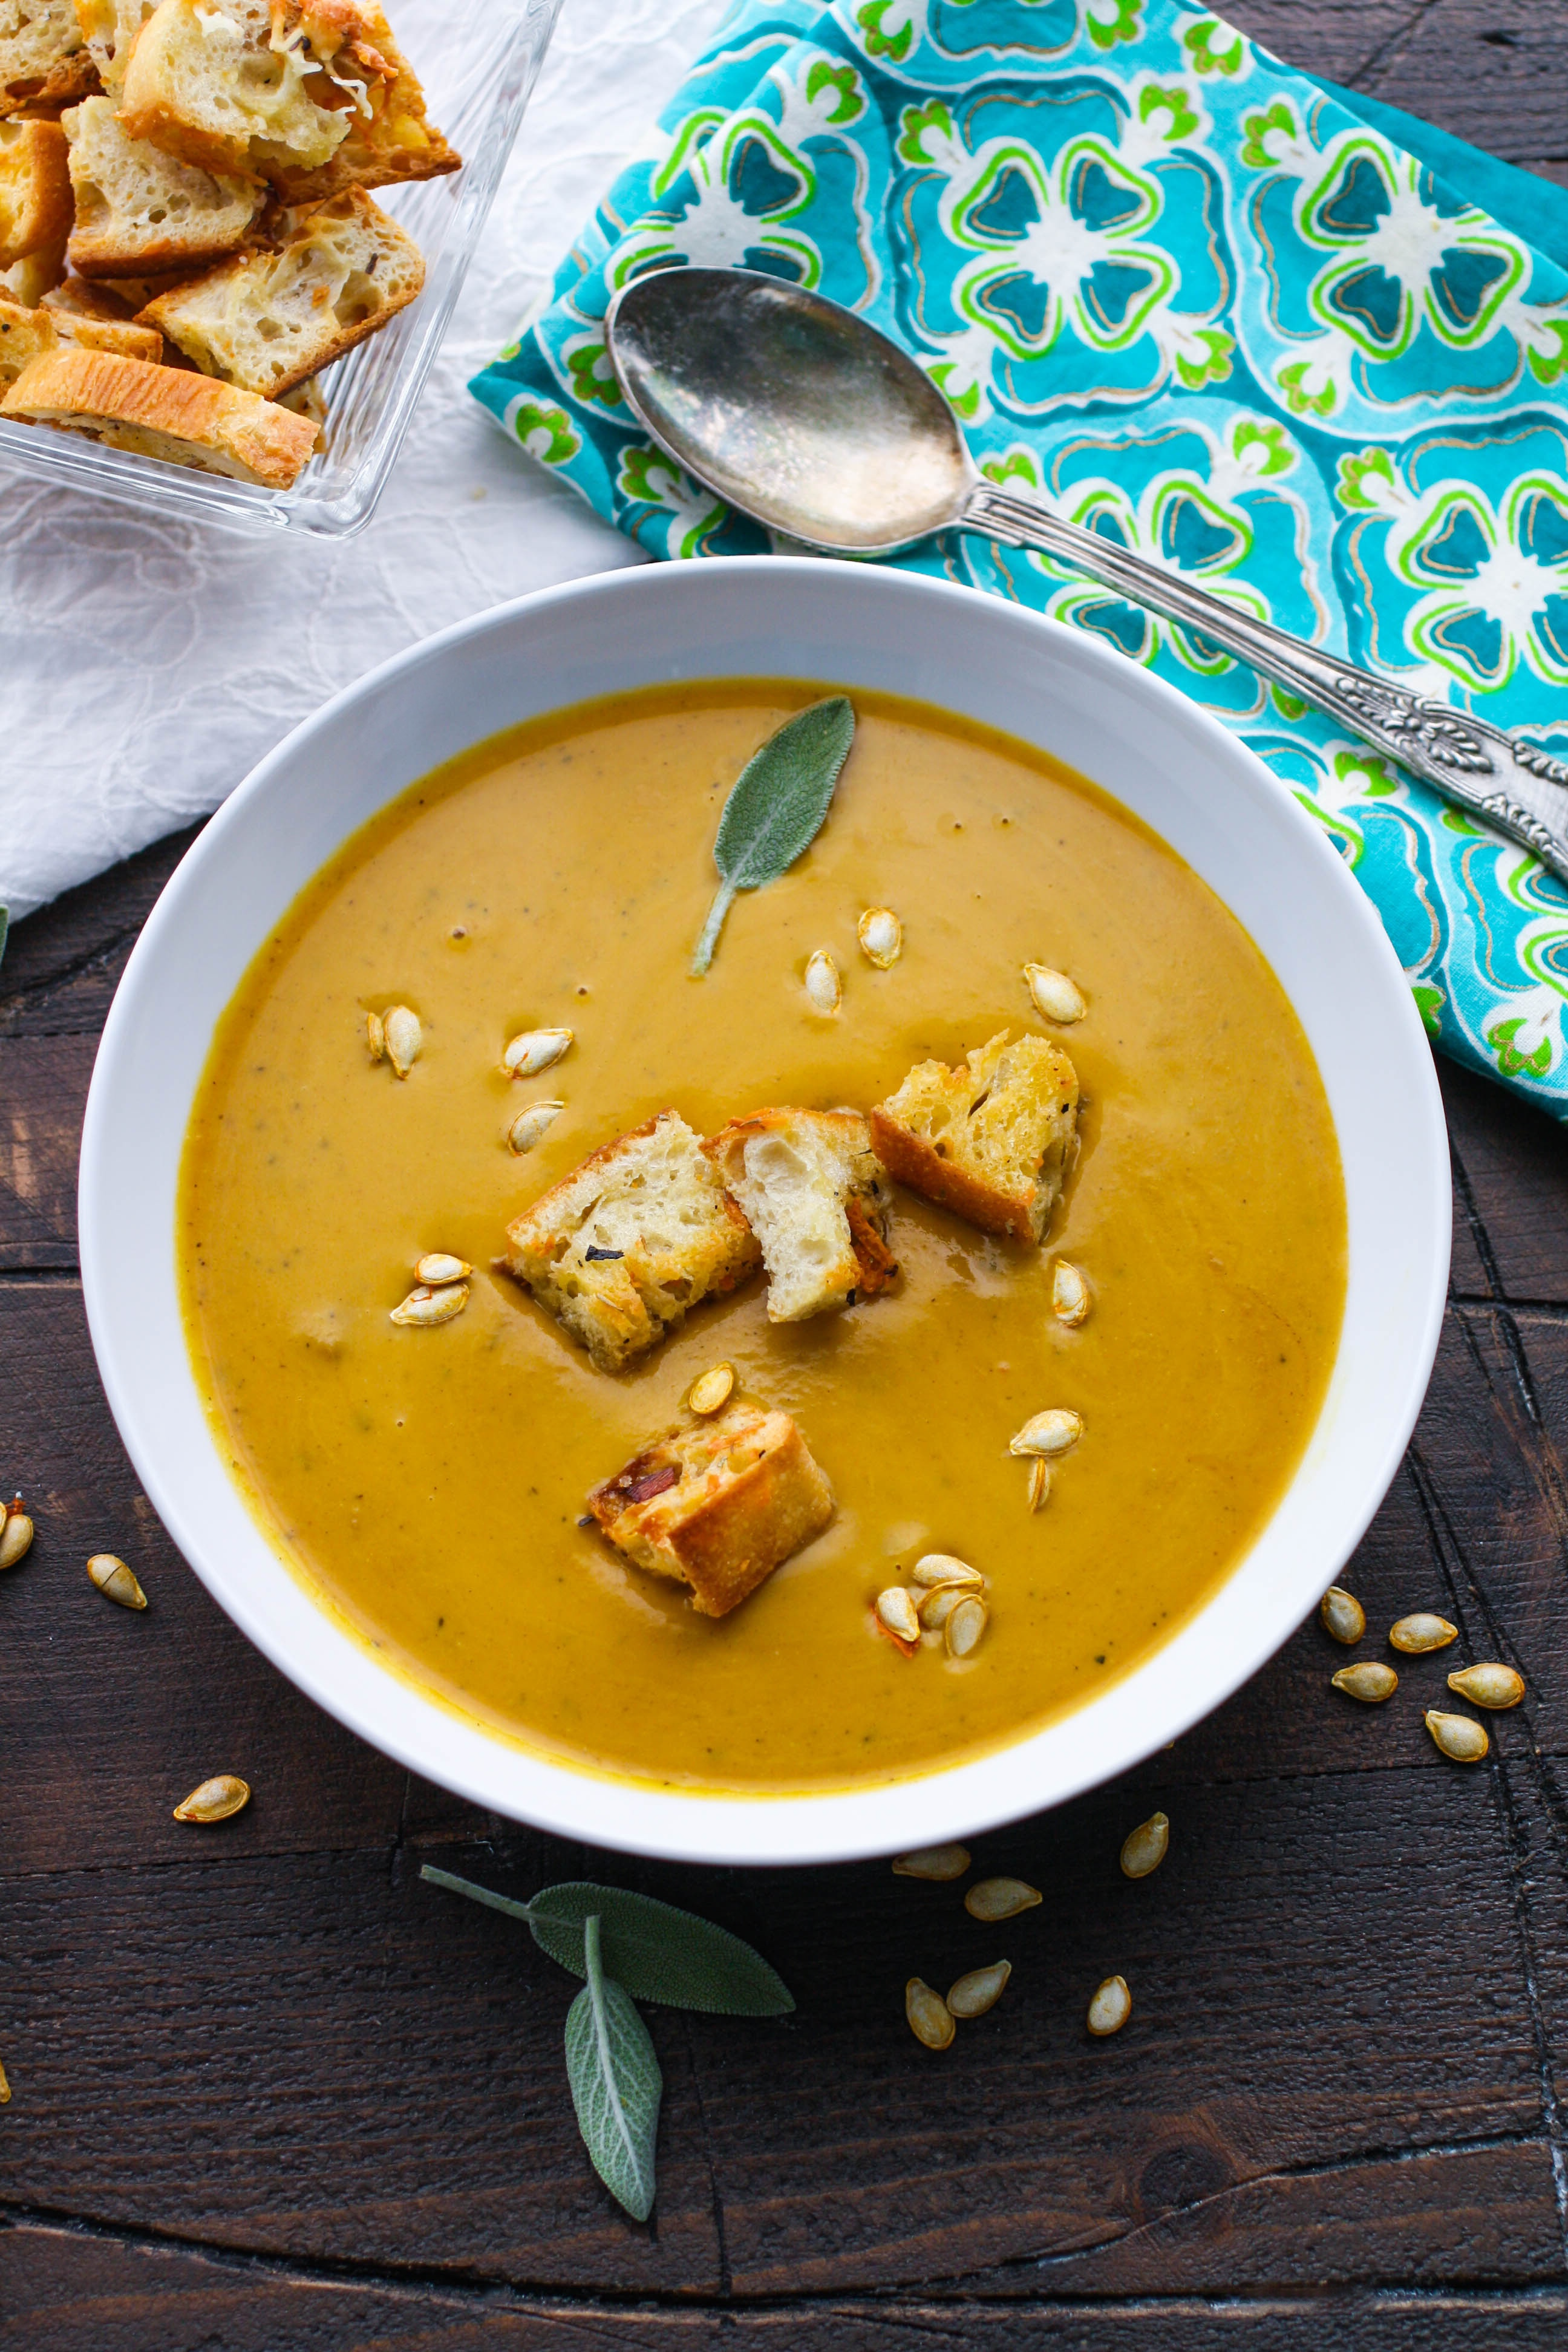 Easy, Creamy Butternut Squash Soup is a bowl of goodness you'll love! The color and flavor of this soup is wonderful!